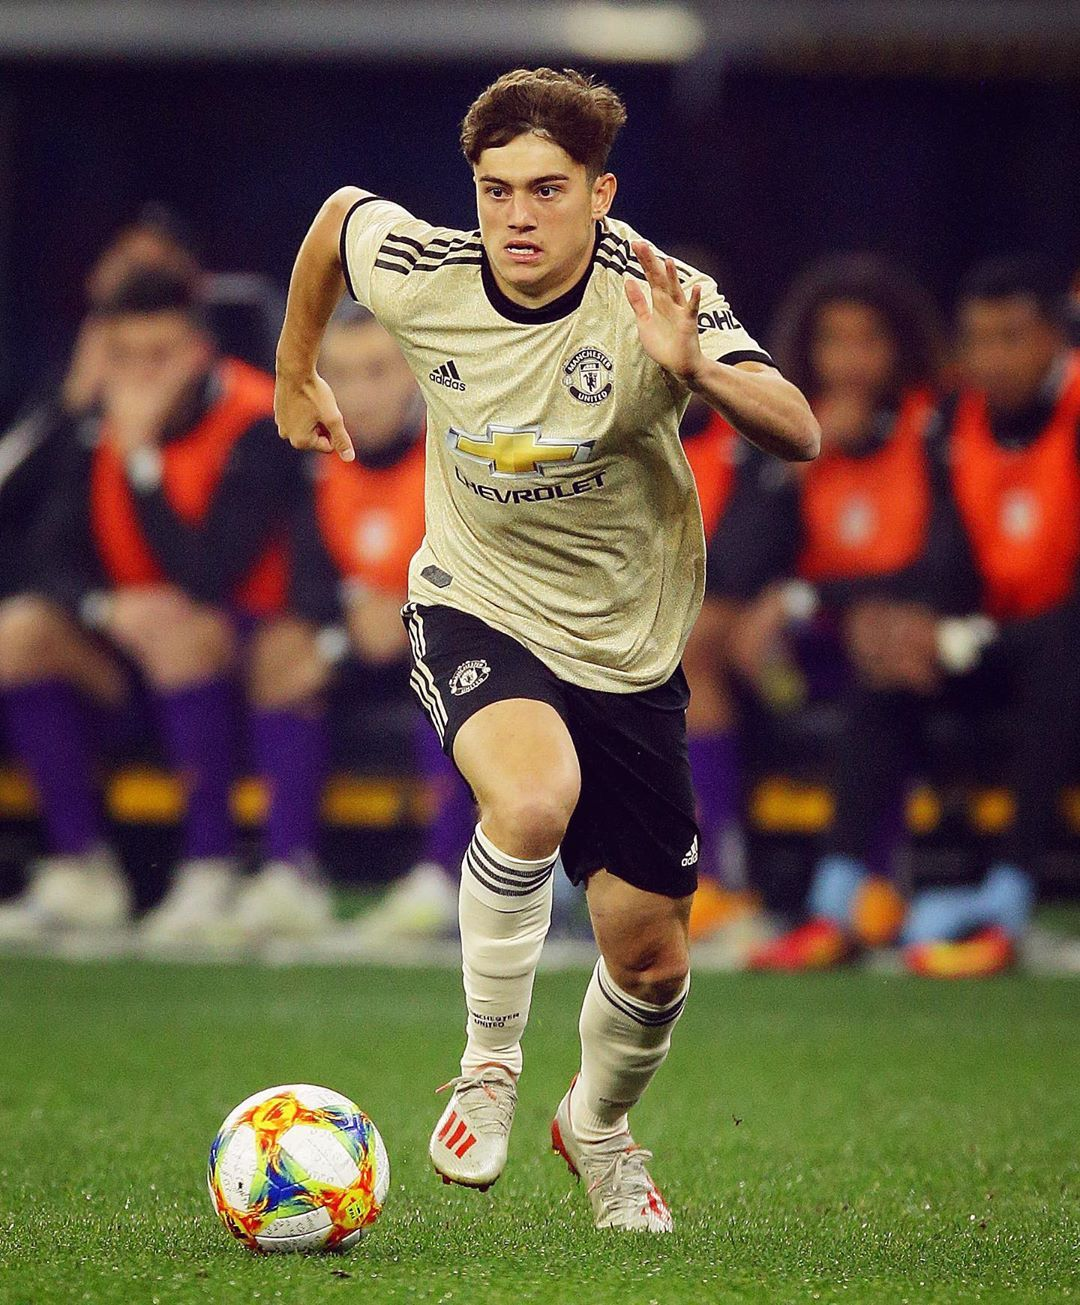 This sight = a defender's nightmare. You've voted Daniel